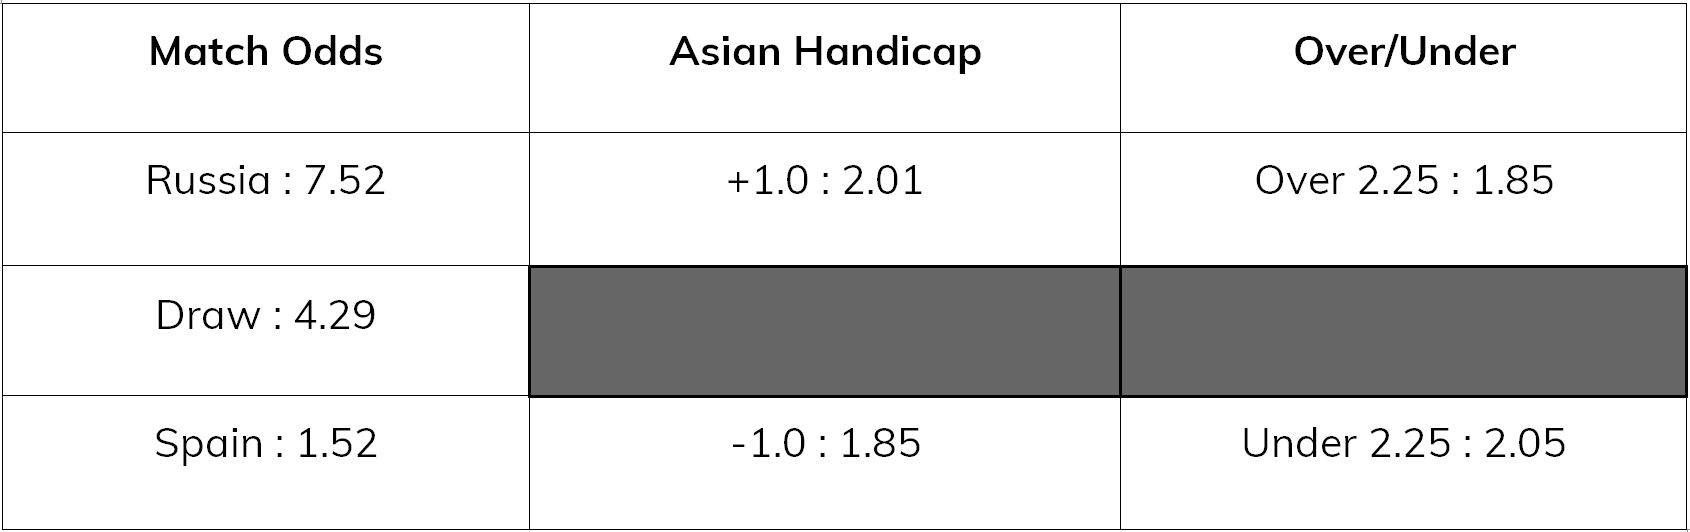 spain-v-russia-asian-handicap-010718-eastbridge7